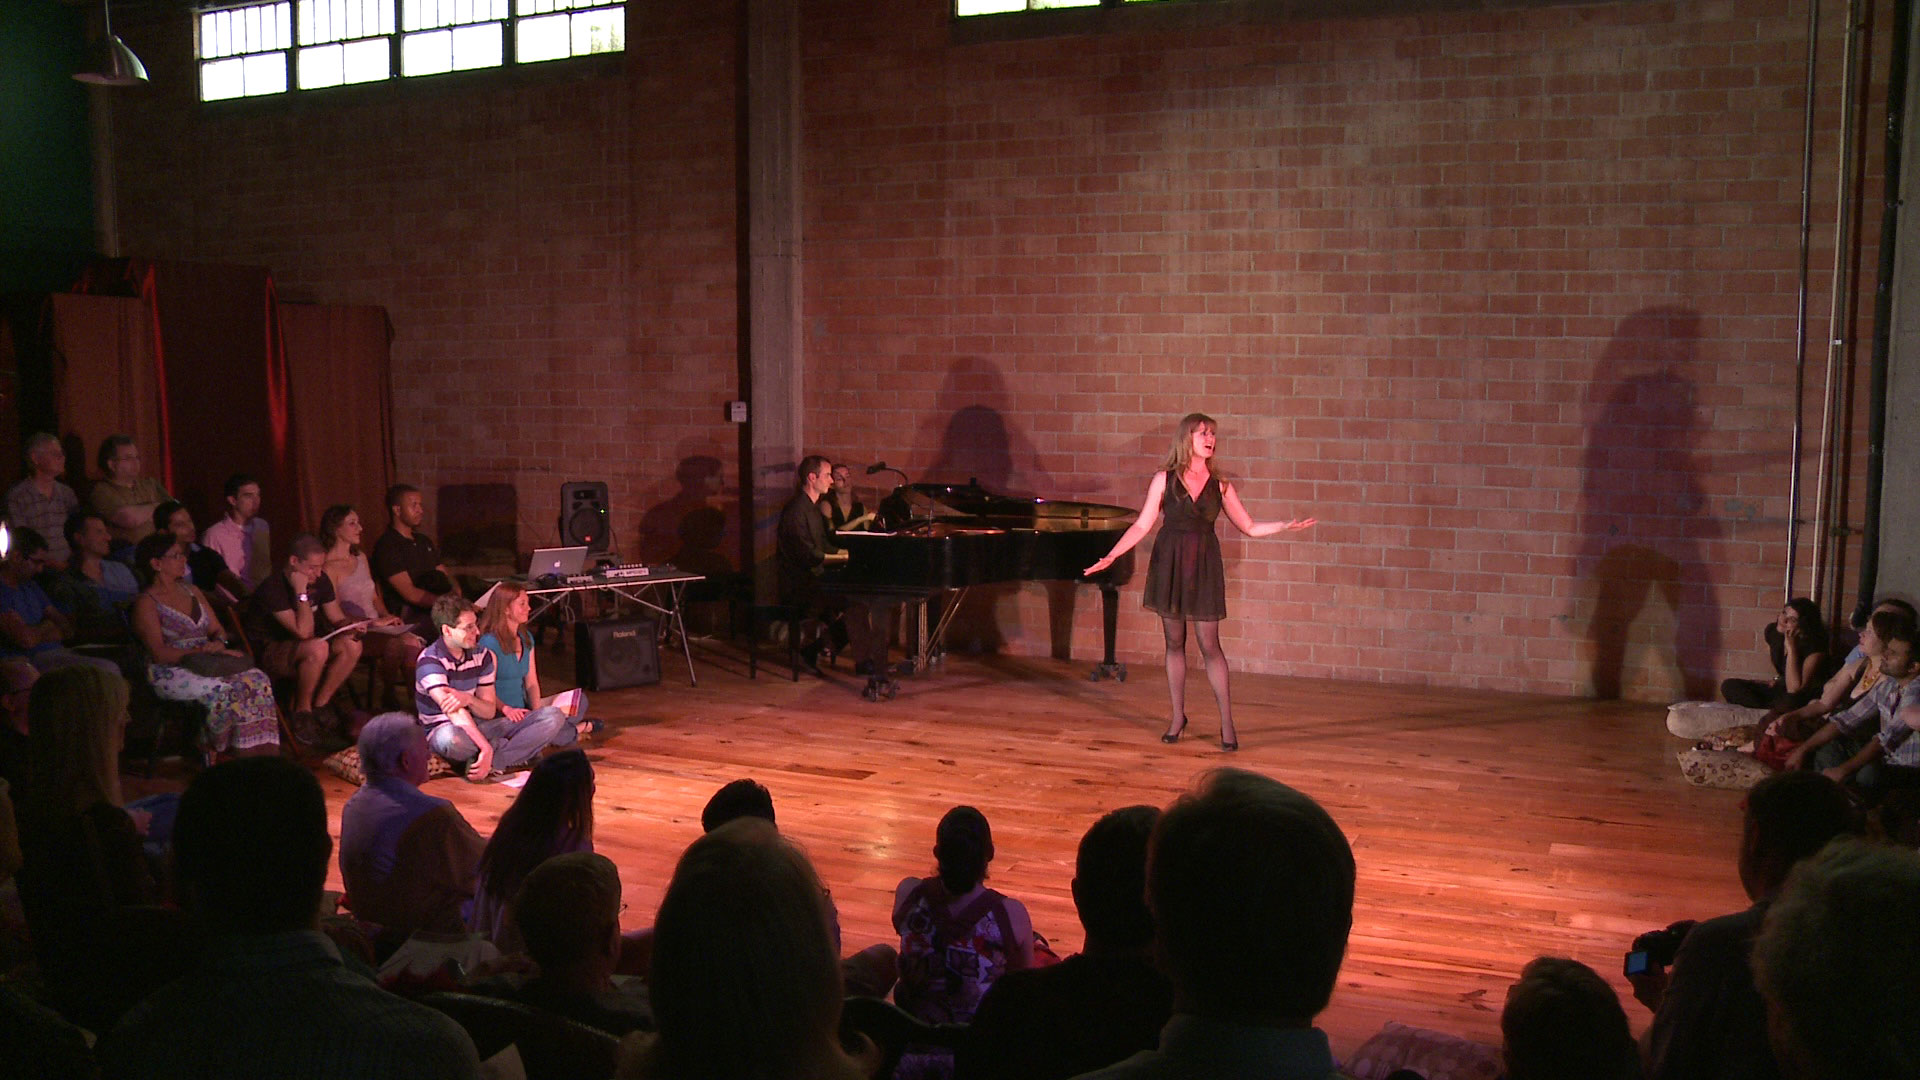 Opening Soiree for Divergence Music & Arts. Performers include singers Misha Penton, Alison Greene, Natasha Manley, Shelley Auer, Lainie Diamond, Michael Walsh and Dennis Arrowsmith; pianists Kyle Evans and Jade Simmons; pianist and composer, Hsin-Jung Tsai; composer, Chris Becker; dancer, Meg Brooker; and actress Amy Guerin